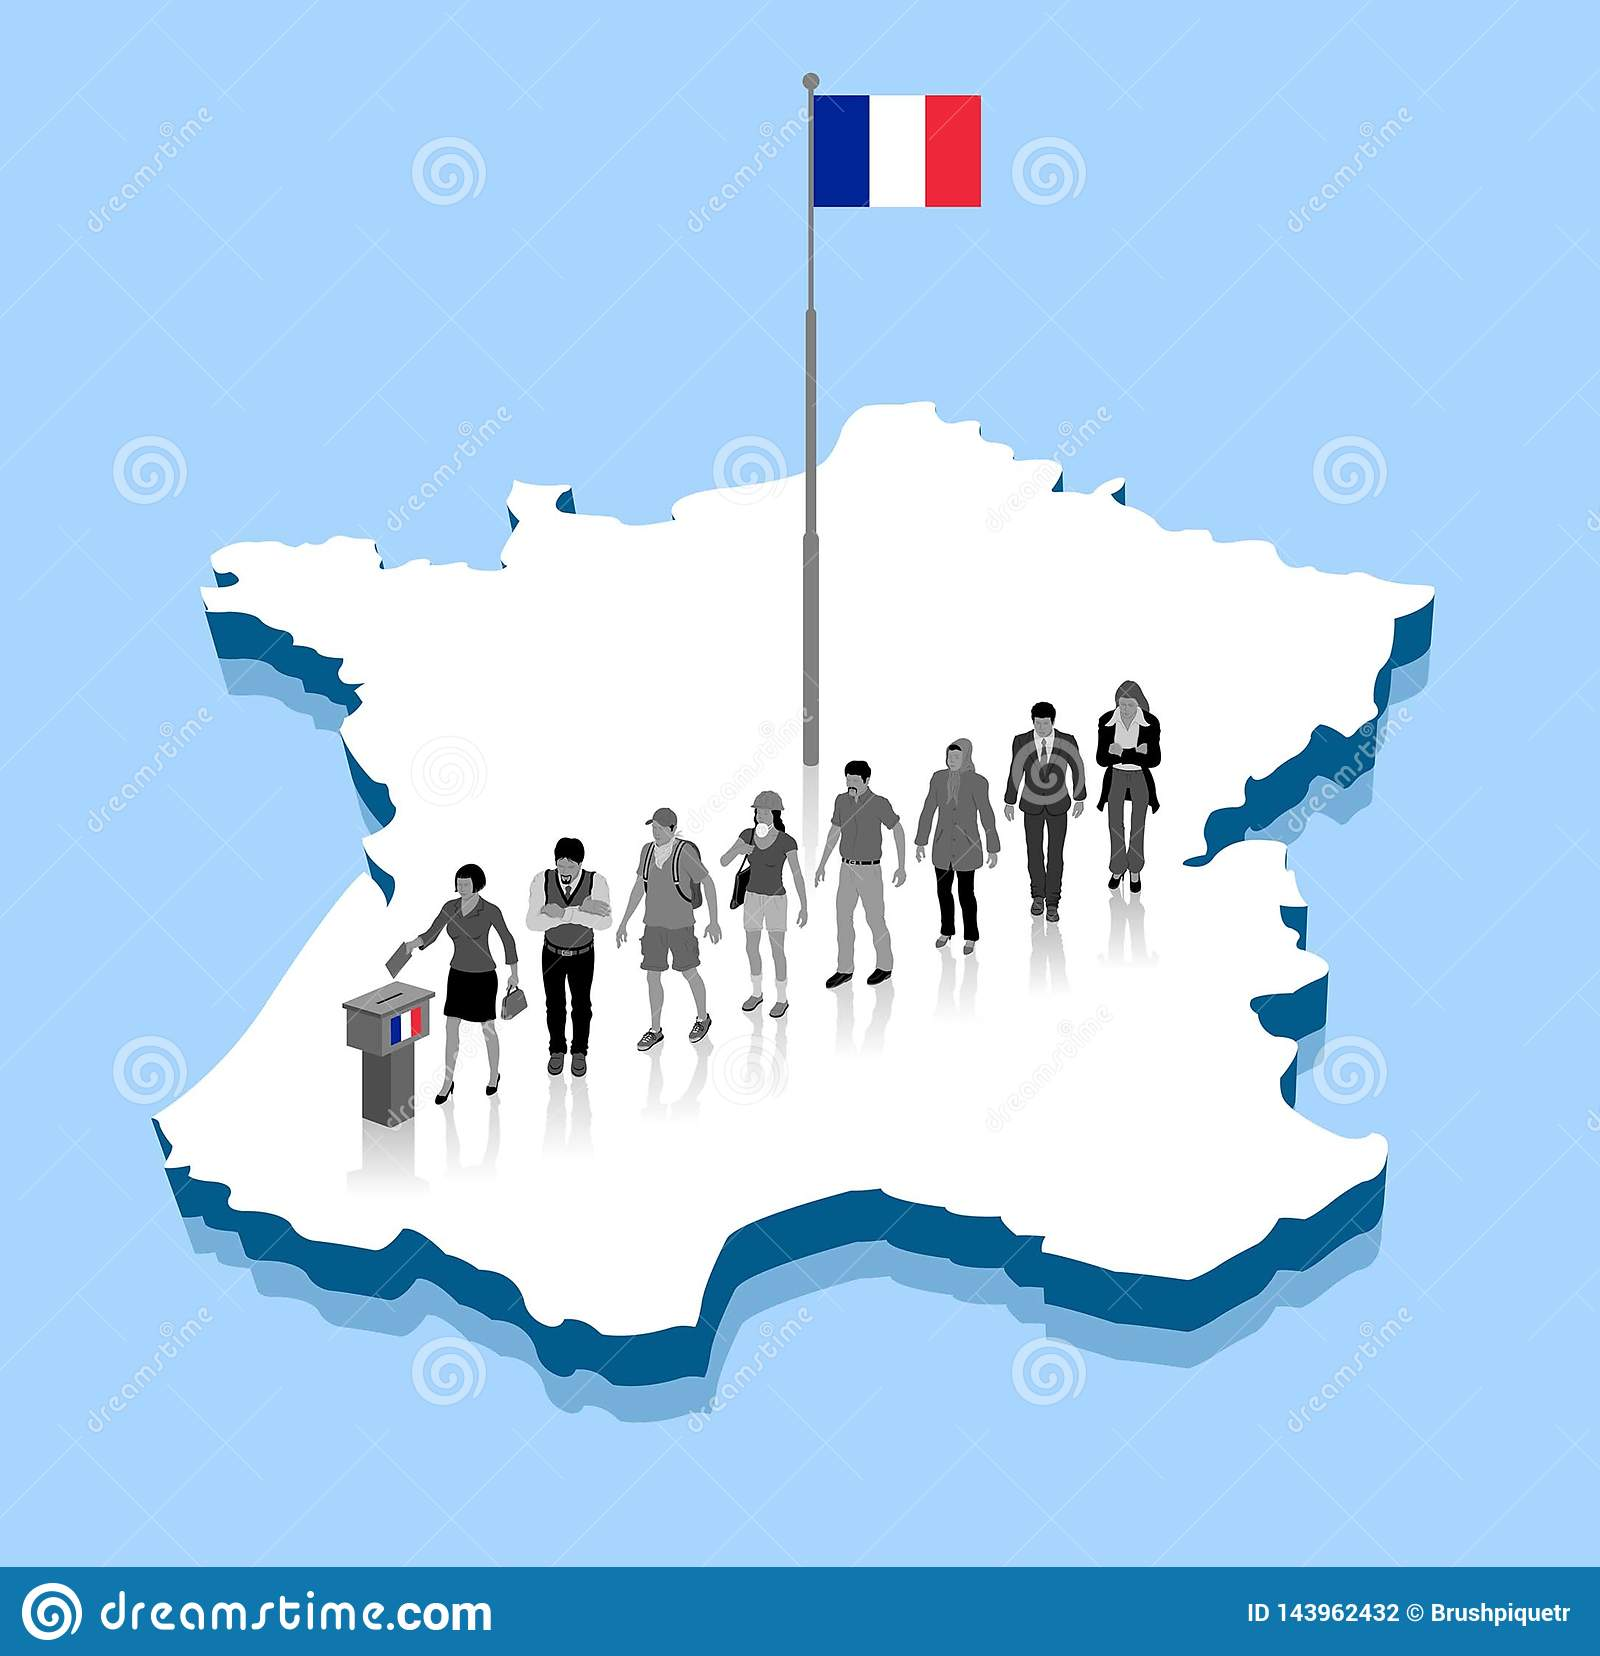 Map Of France Voting.French Citizens Are Voting For Election Over A France 3d Map With